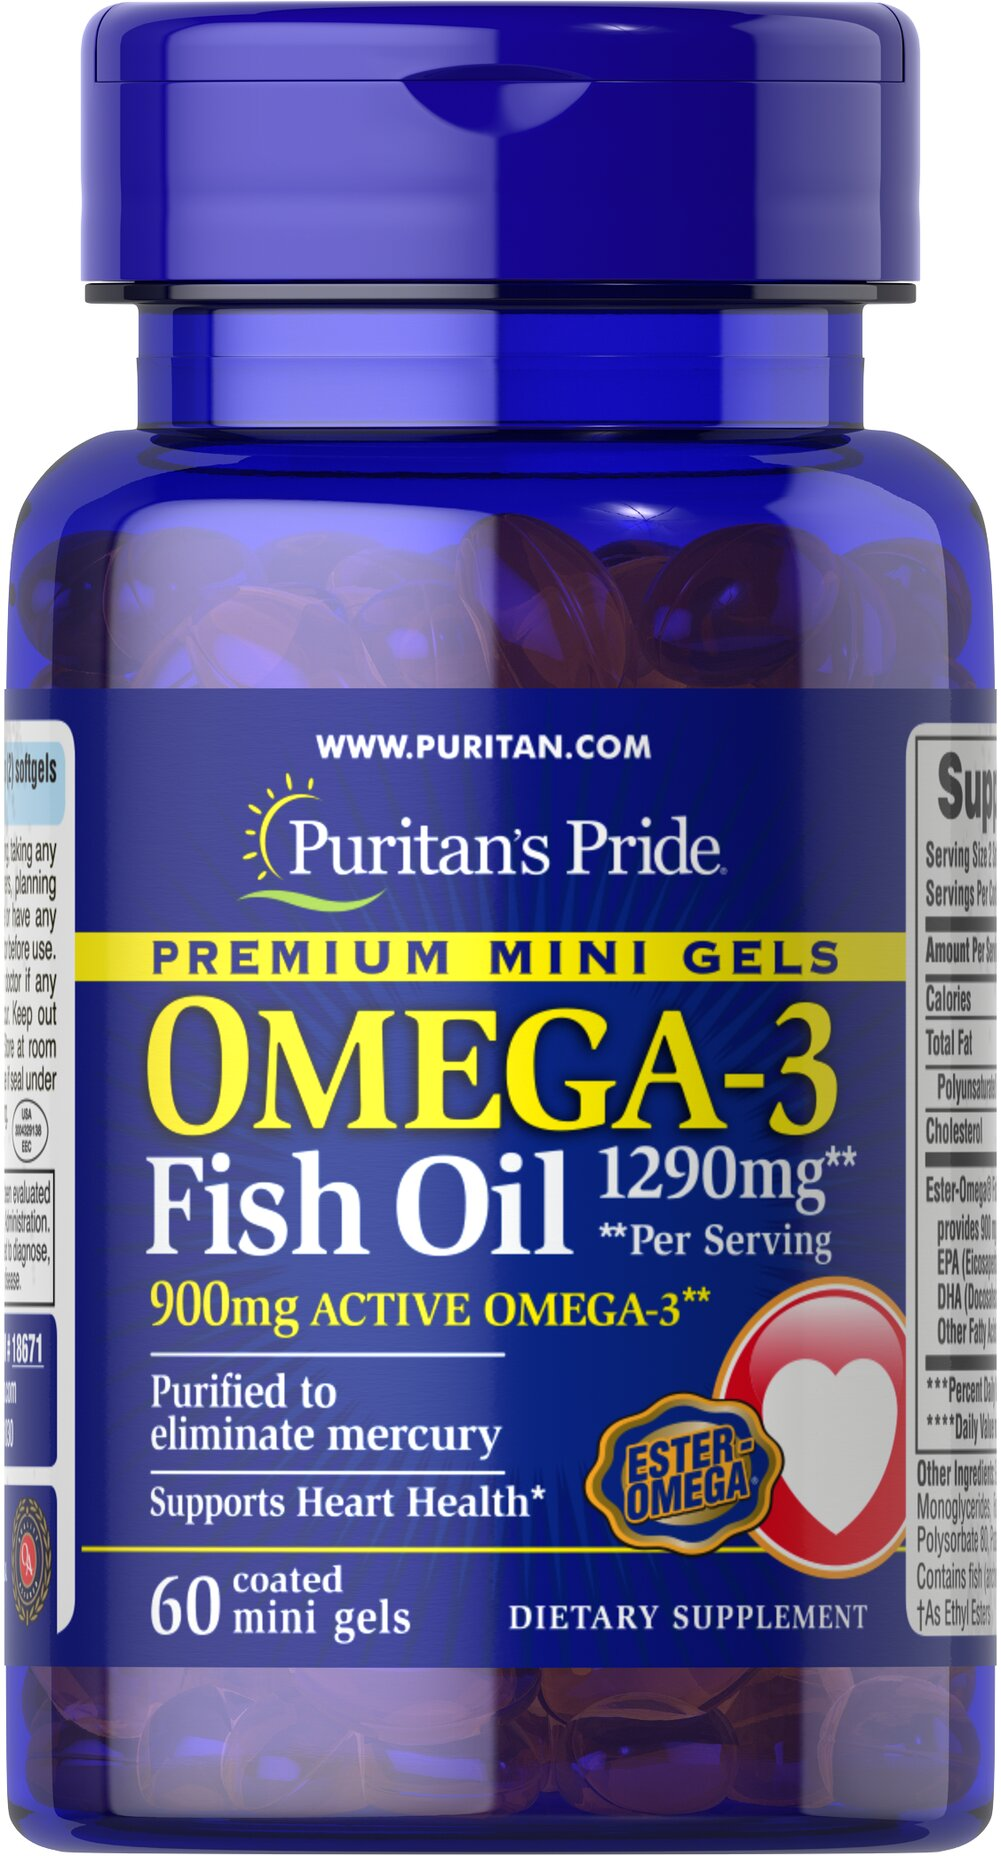 Omega-3 Fish Oil 645 mg Mini Gels (450 mg Active Omega-3)  60 Coated Softgels 645 mg $19.19